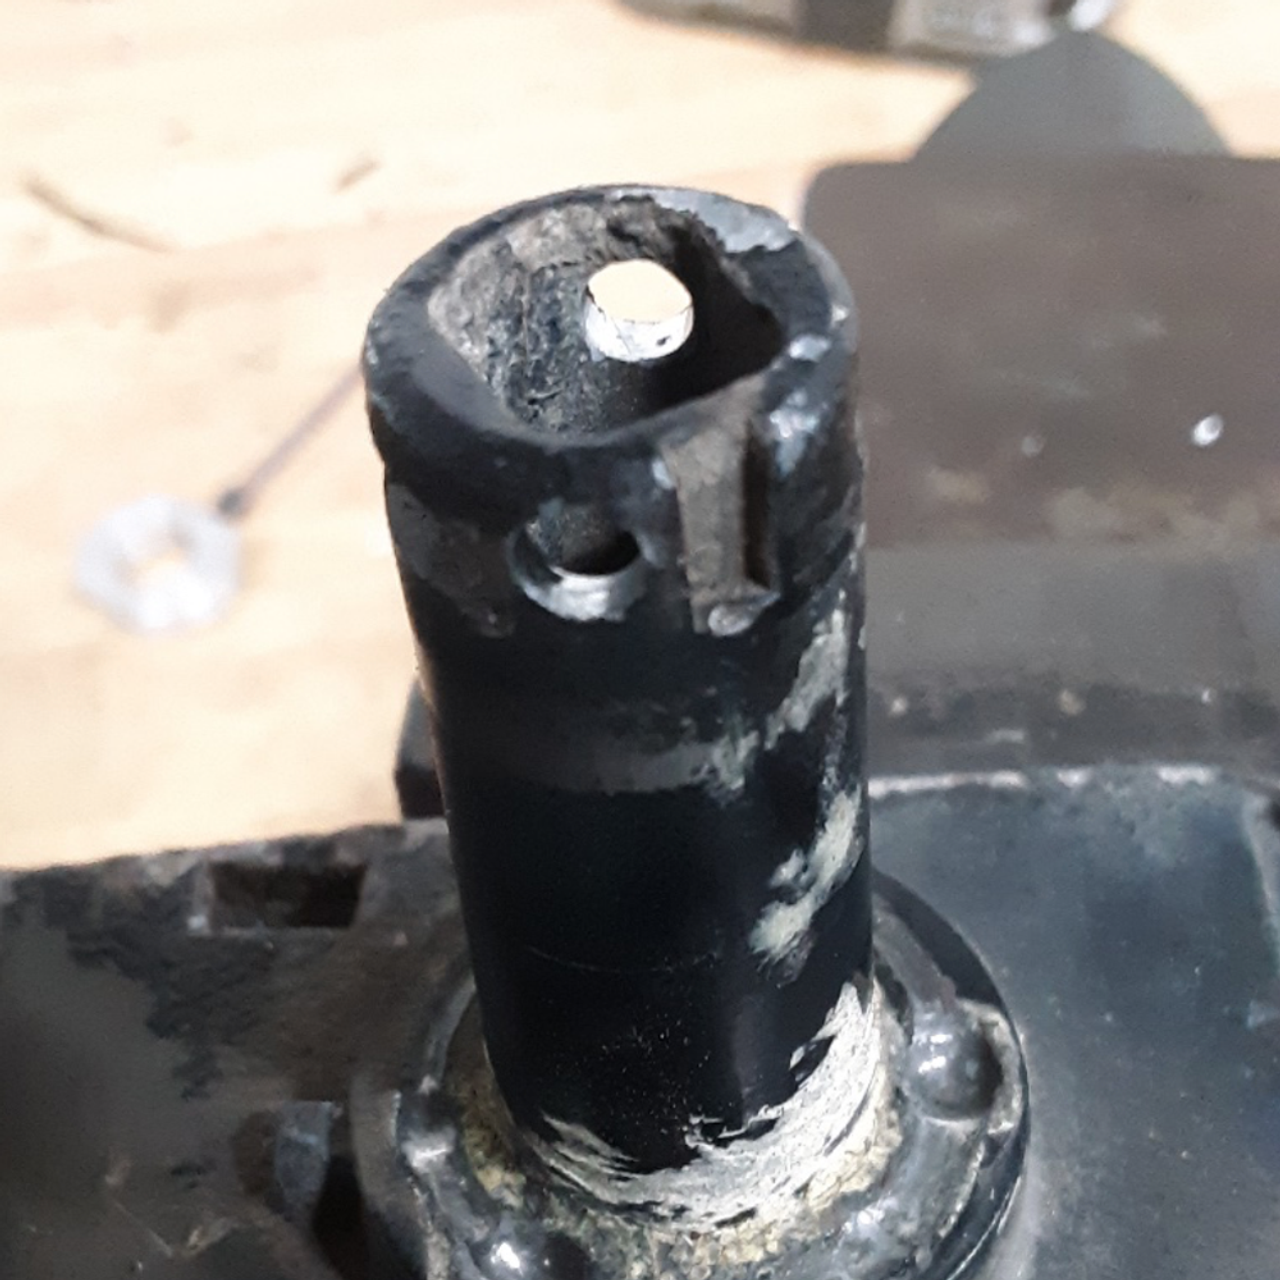 80 Series Floppy Mirror Fix (FMF-1)- For the second hole, Drill 1/8 pilot hole first then #20 drill hole